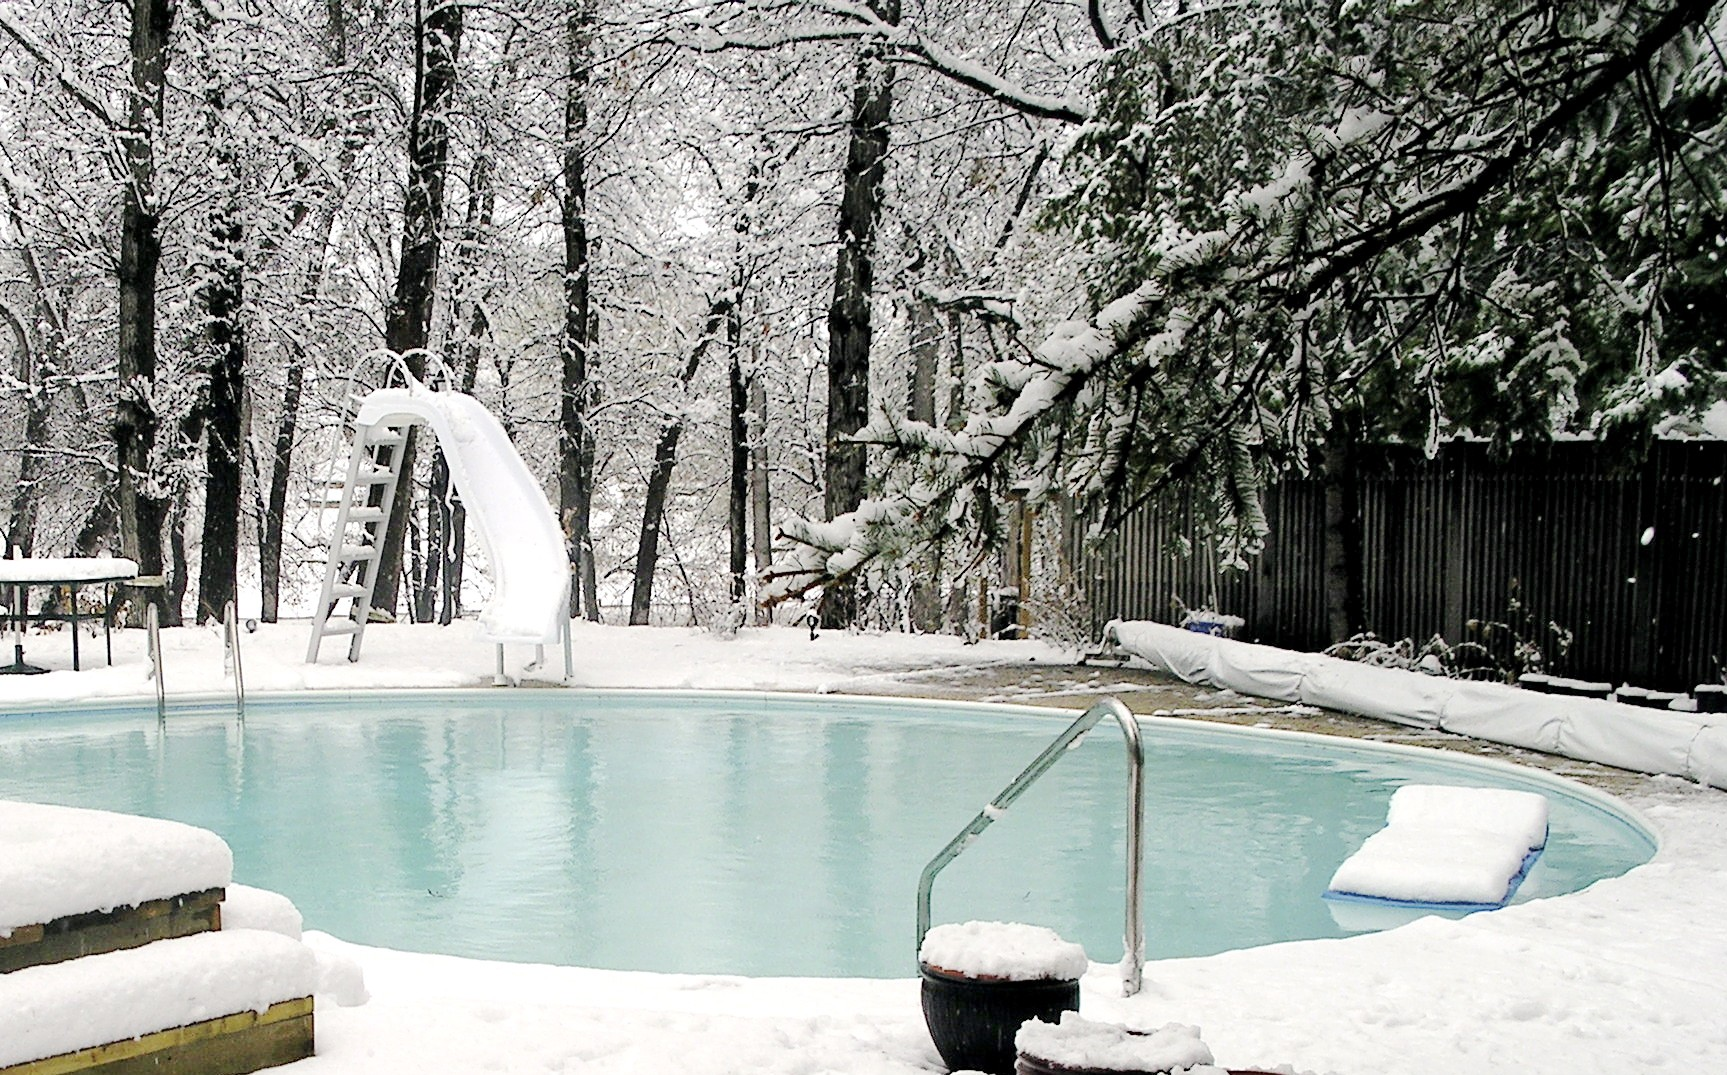 Winterize With Swimming Pool Safety Covers - Poolarama ...